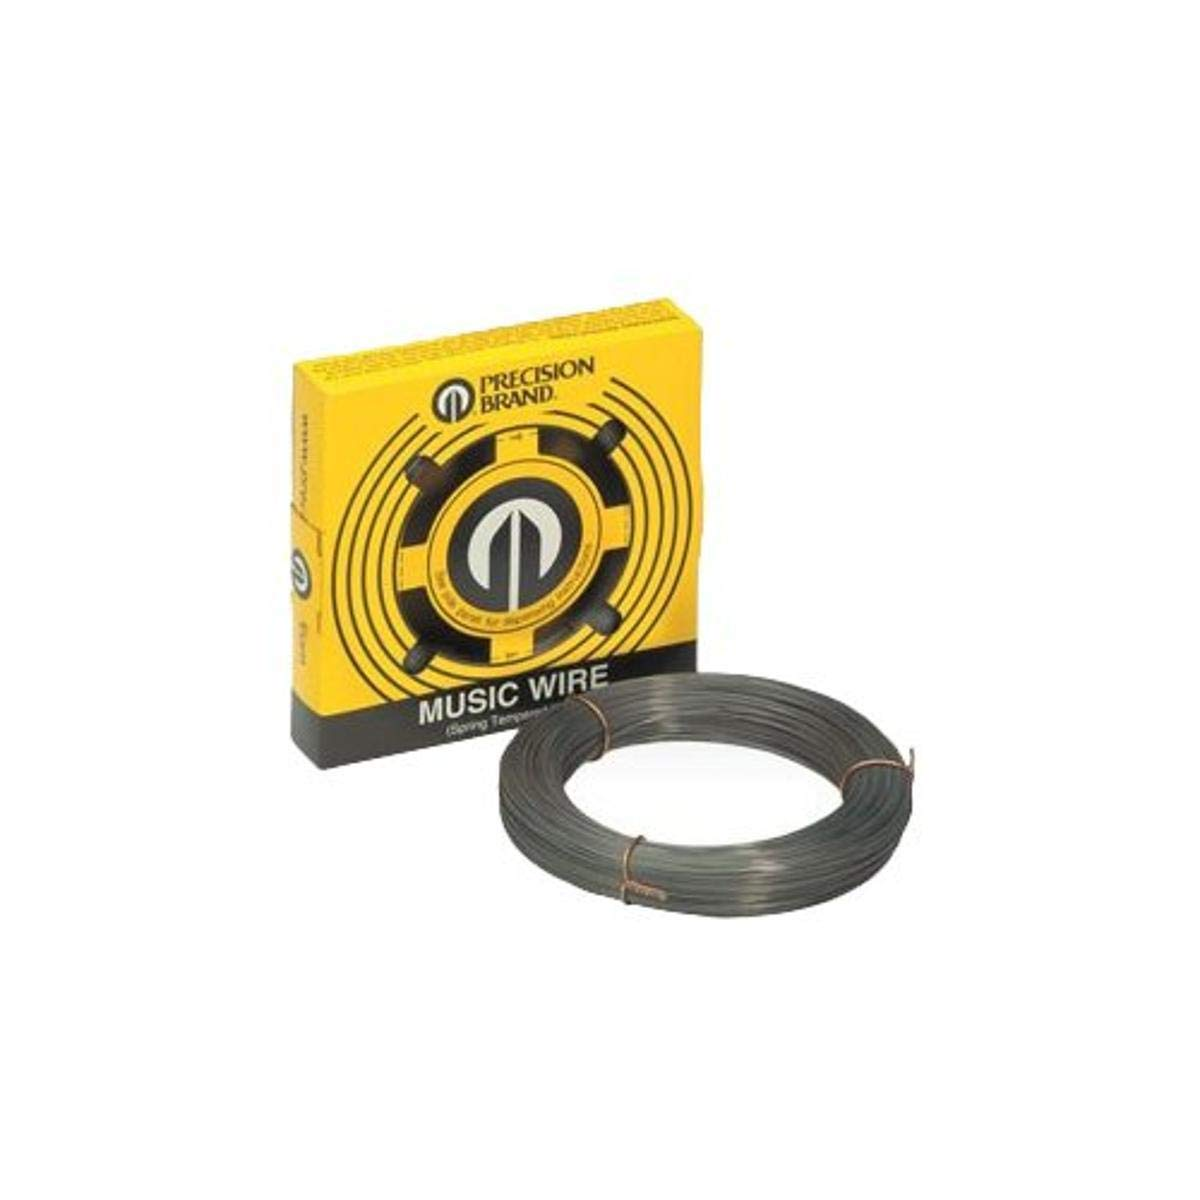 Reservation Precision Brand 039-21012 Music Wire lb Factory outlet 0.012″ Diameter 1